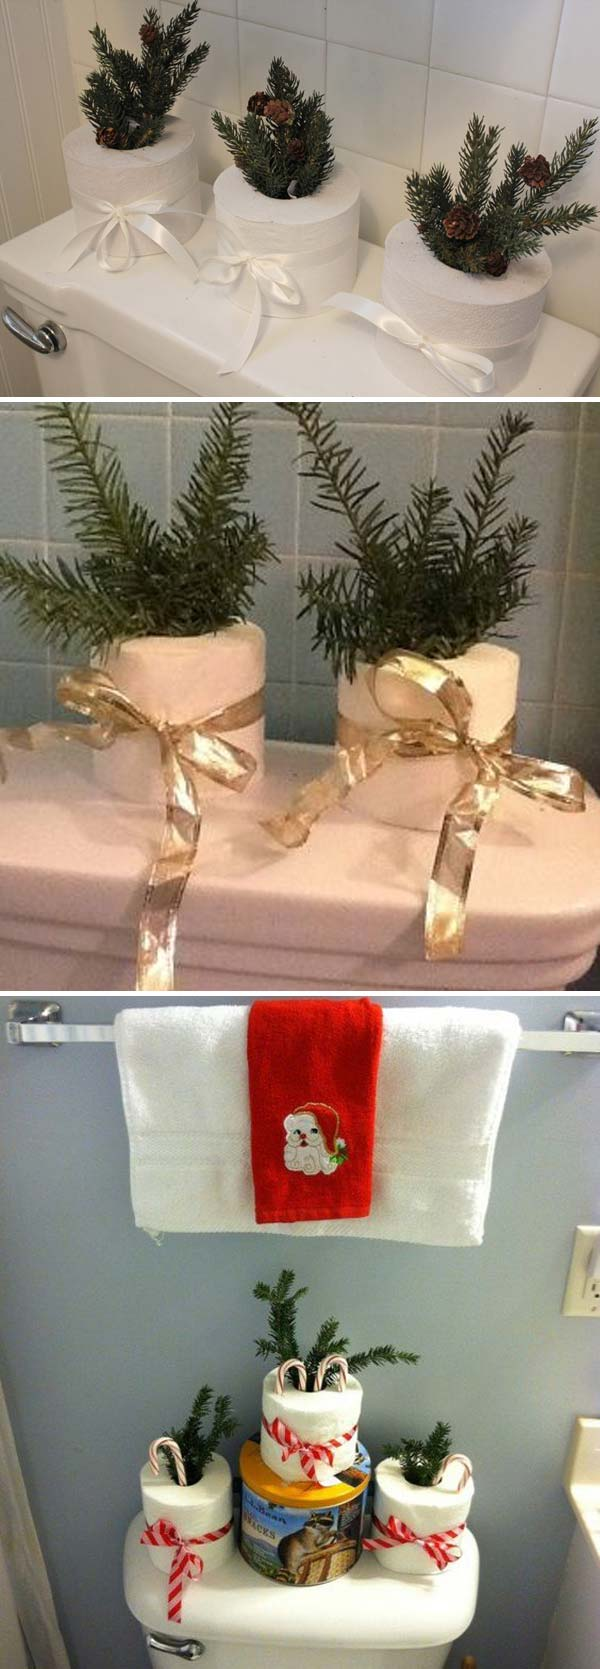 Top 9 Awesome Decorating Ideas to Get Bathroom a Christmas Look